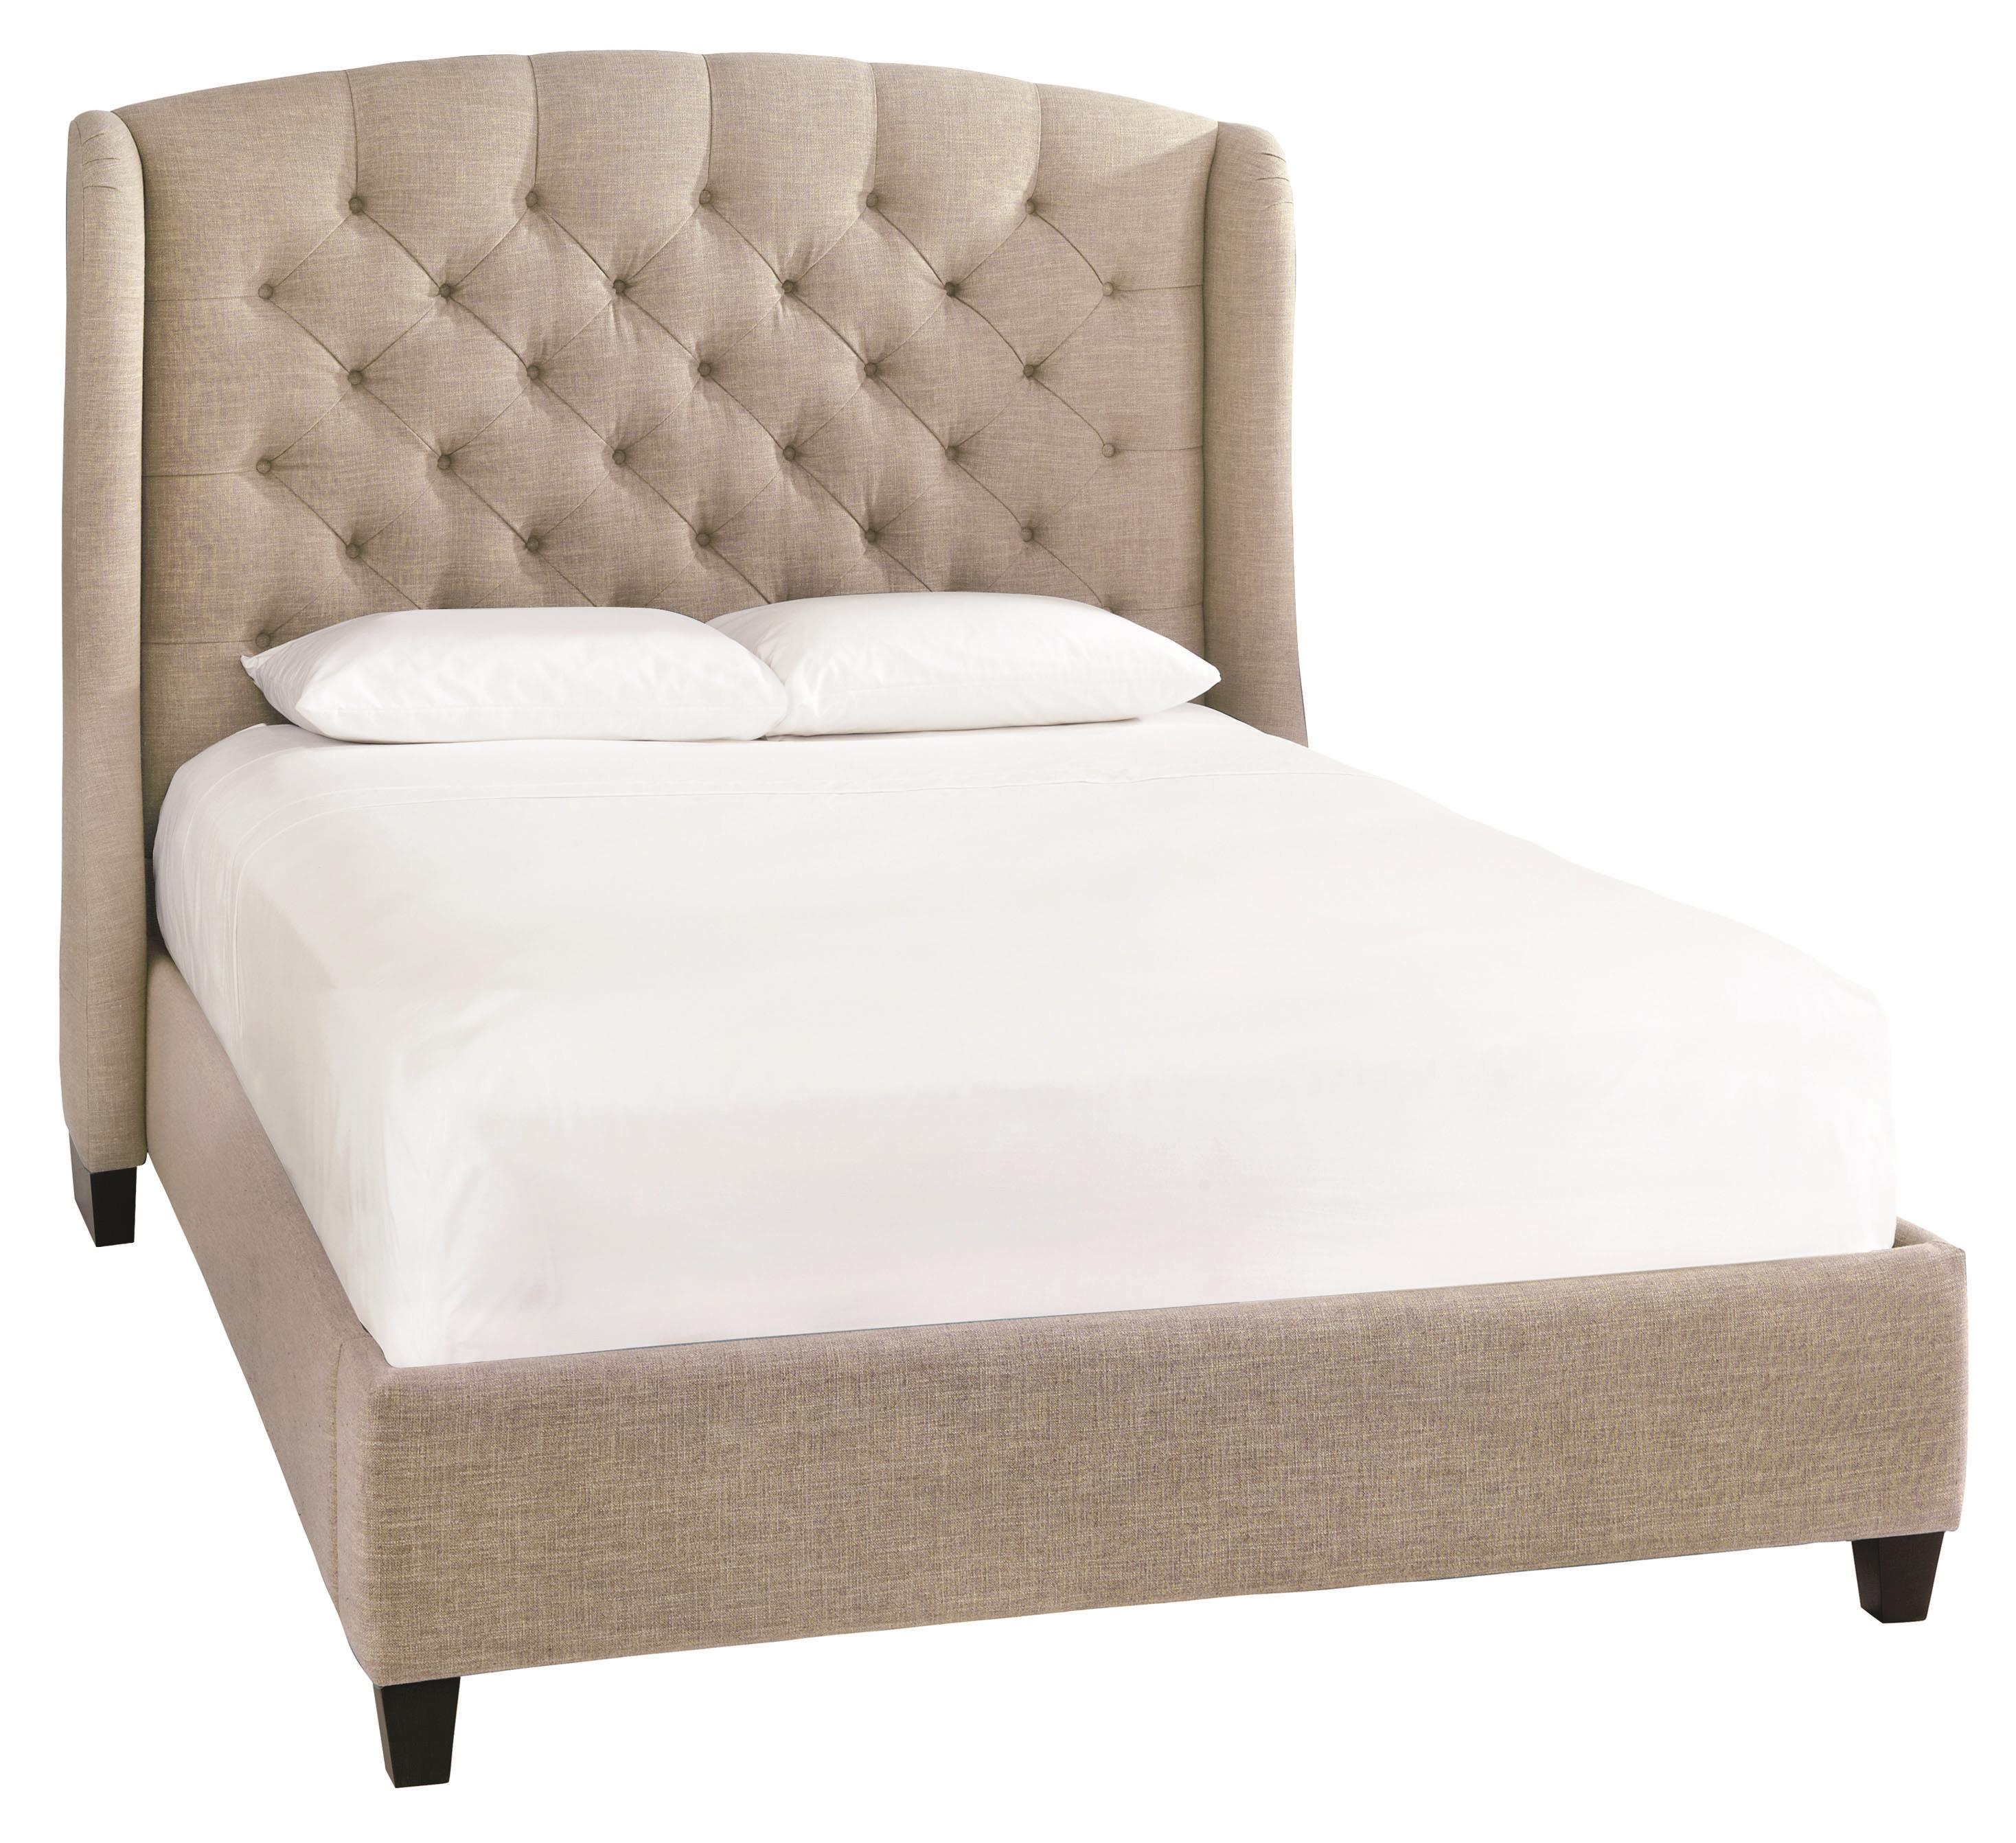 bassett custom upholstered beds paris queen size